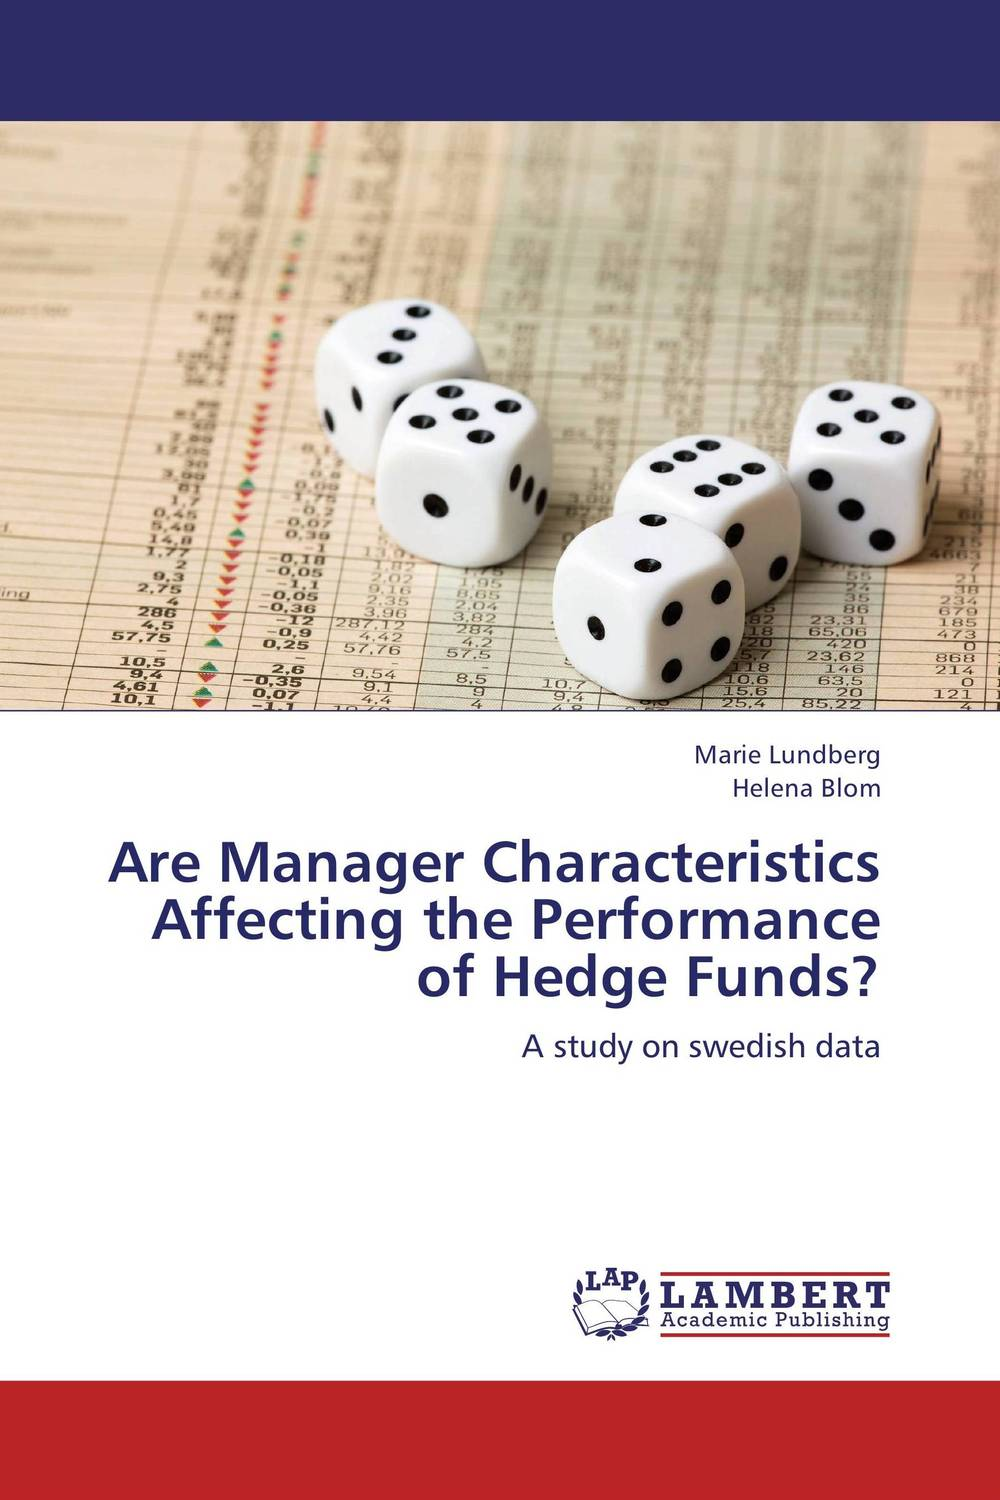 Are Manager Characteristics Affecting the Performance of Hedge Funds? davis edwards risk management in trading techniques to drive profitability of hedge funds and trading desks